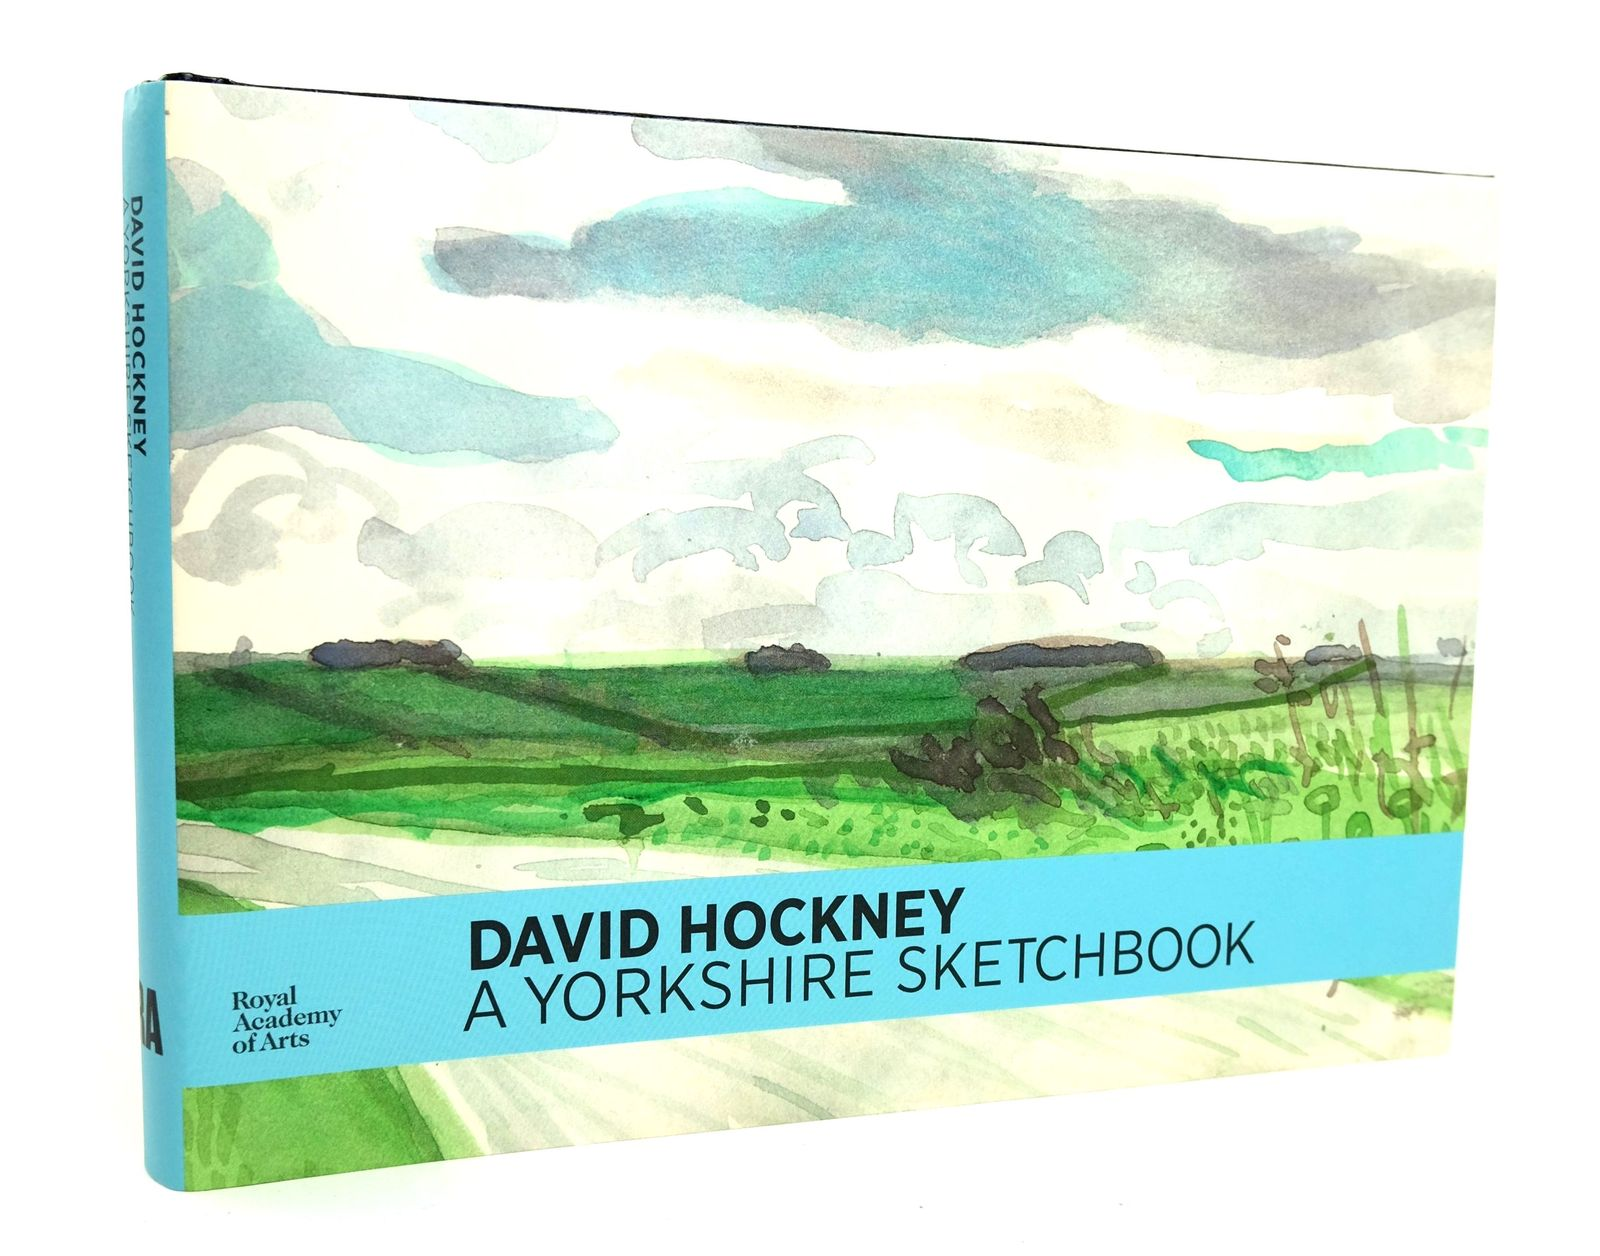 Photo of DAVID HOCKNEY: A YORKSHIRE SKETCHBOOK written by Hockney, David illustrated by Hockney, David published by Royal Academy of Arts (STOCK CODE: 1818957)  for sale by Stella & Rose's Books